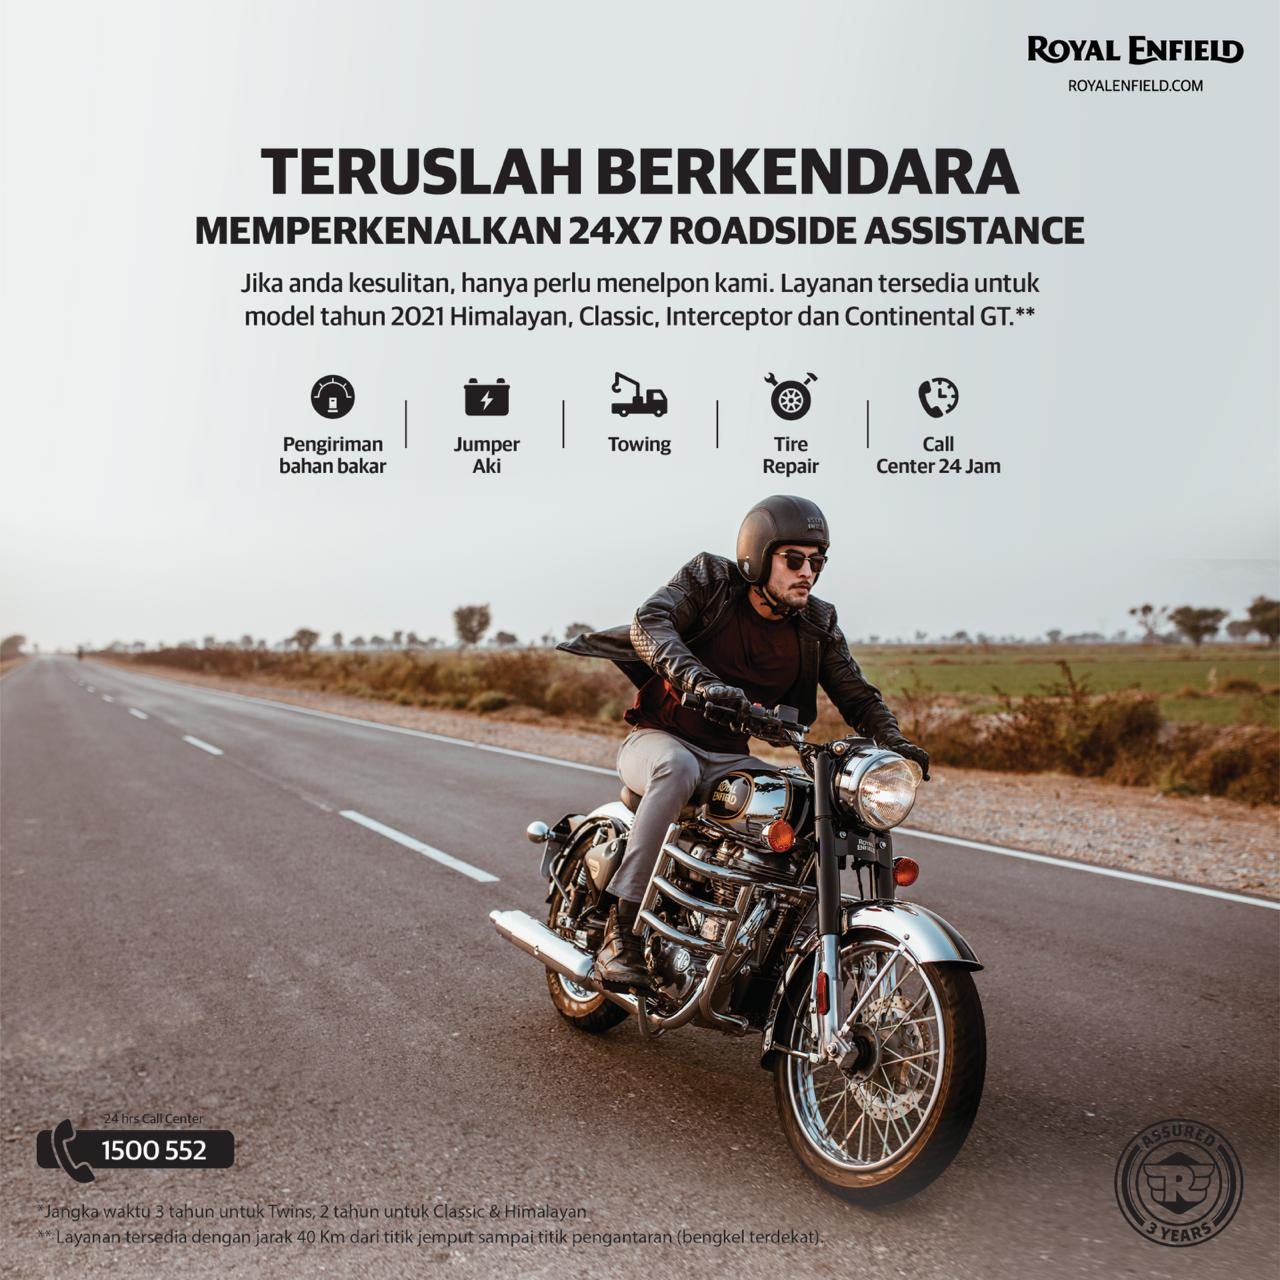 https://indonesiarideadventure.com/wp-content/uploads/2021/01/WhatsApp-Image-2021-01-19-at-12.55.40-PM.jpeg